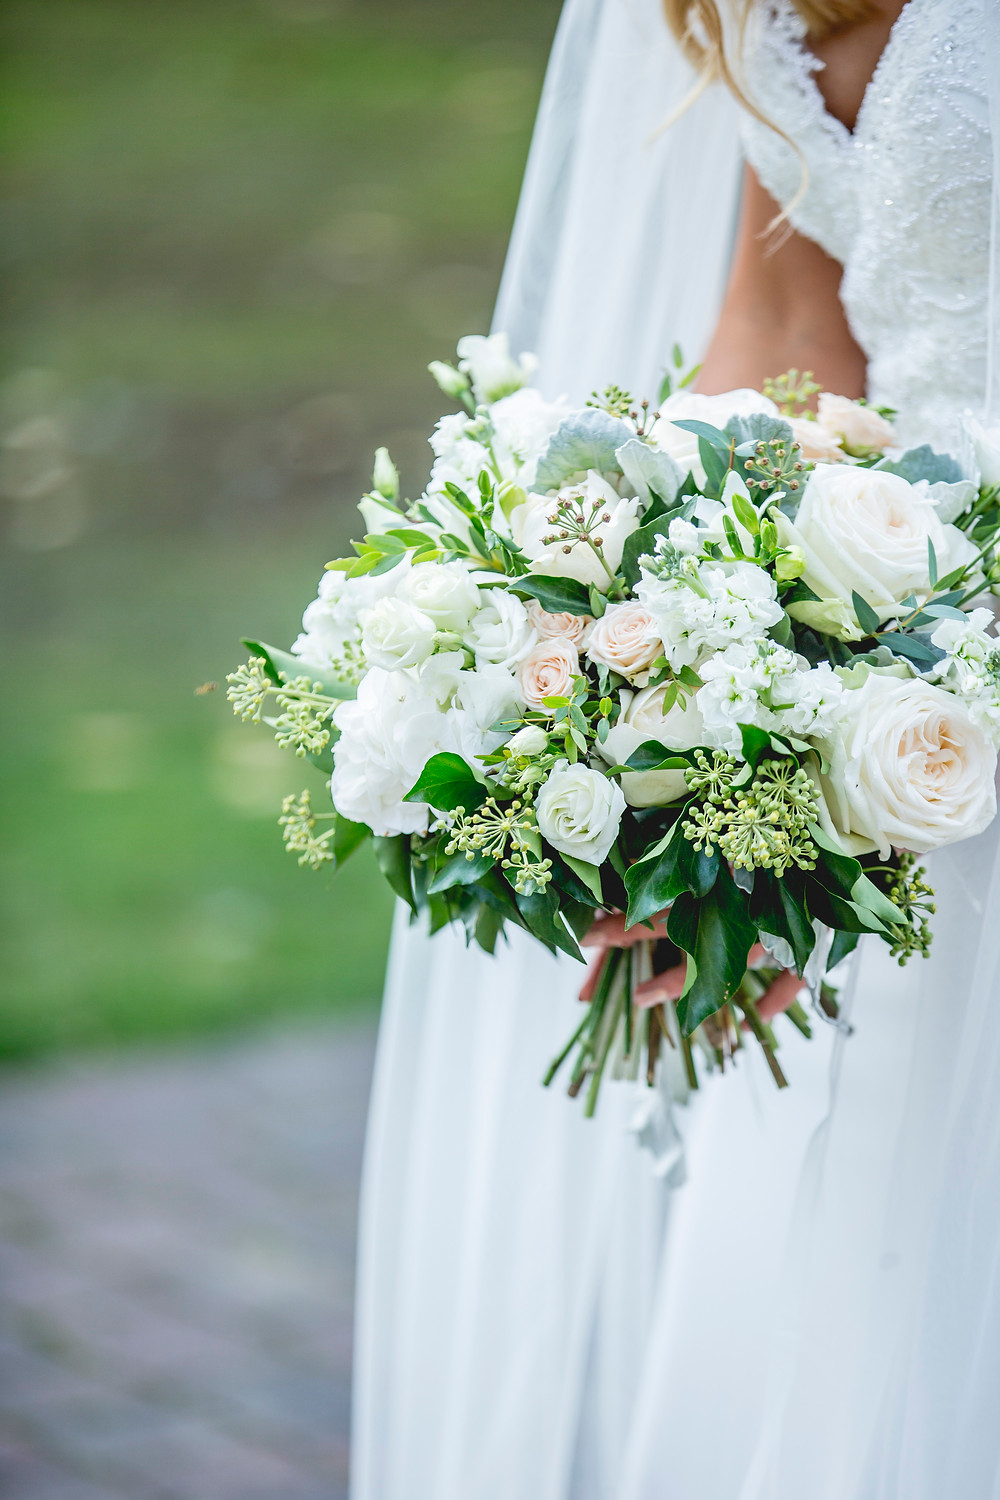 Hand Tied white, blush and green Bridal bouquet wedding flowers at MAtfen Hall Northumberland. Image by Sean Elliott Photography